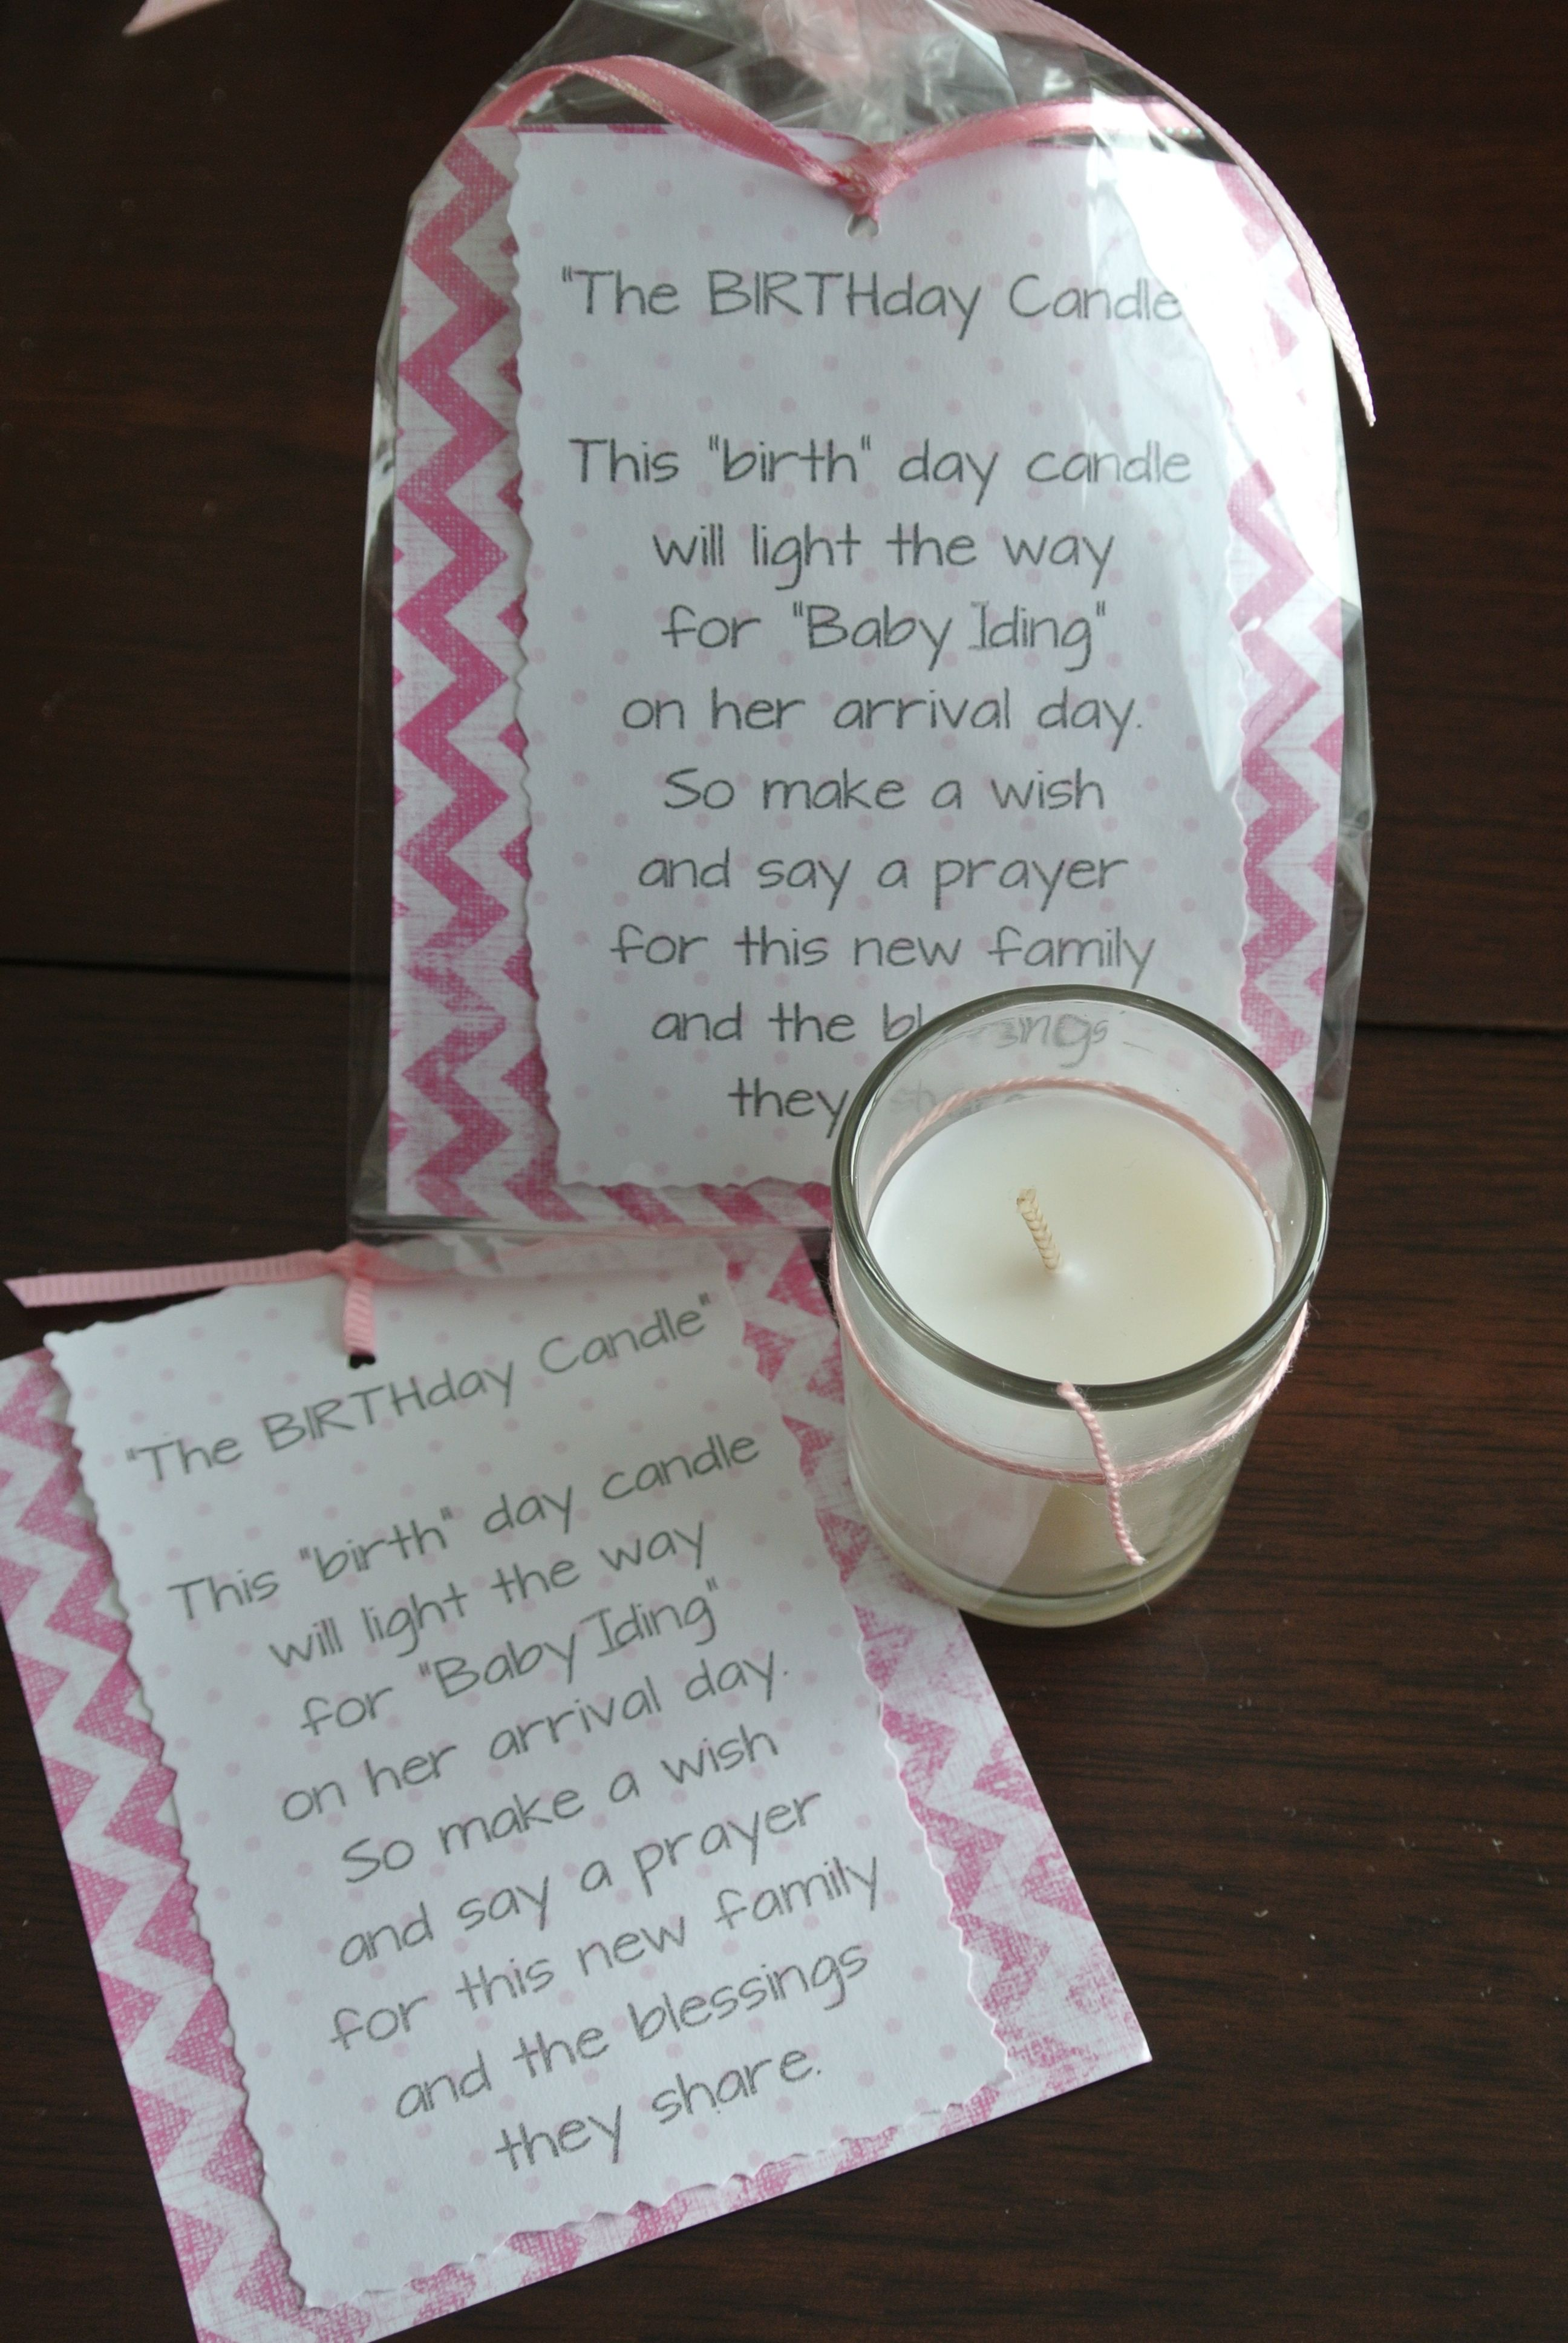 A BIRTHday candle shower favor